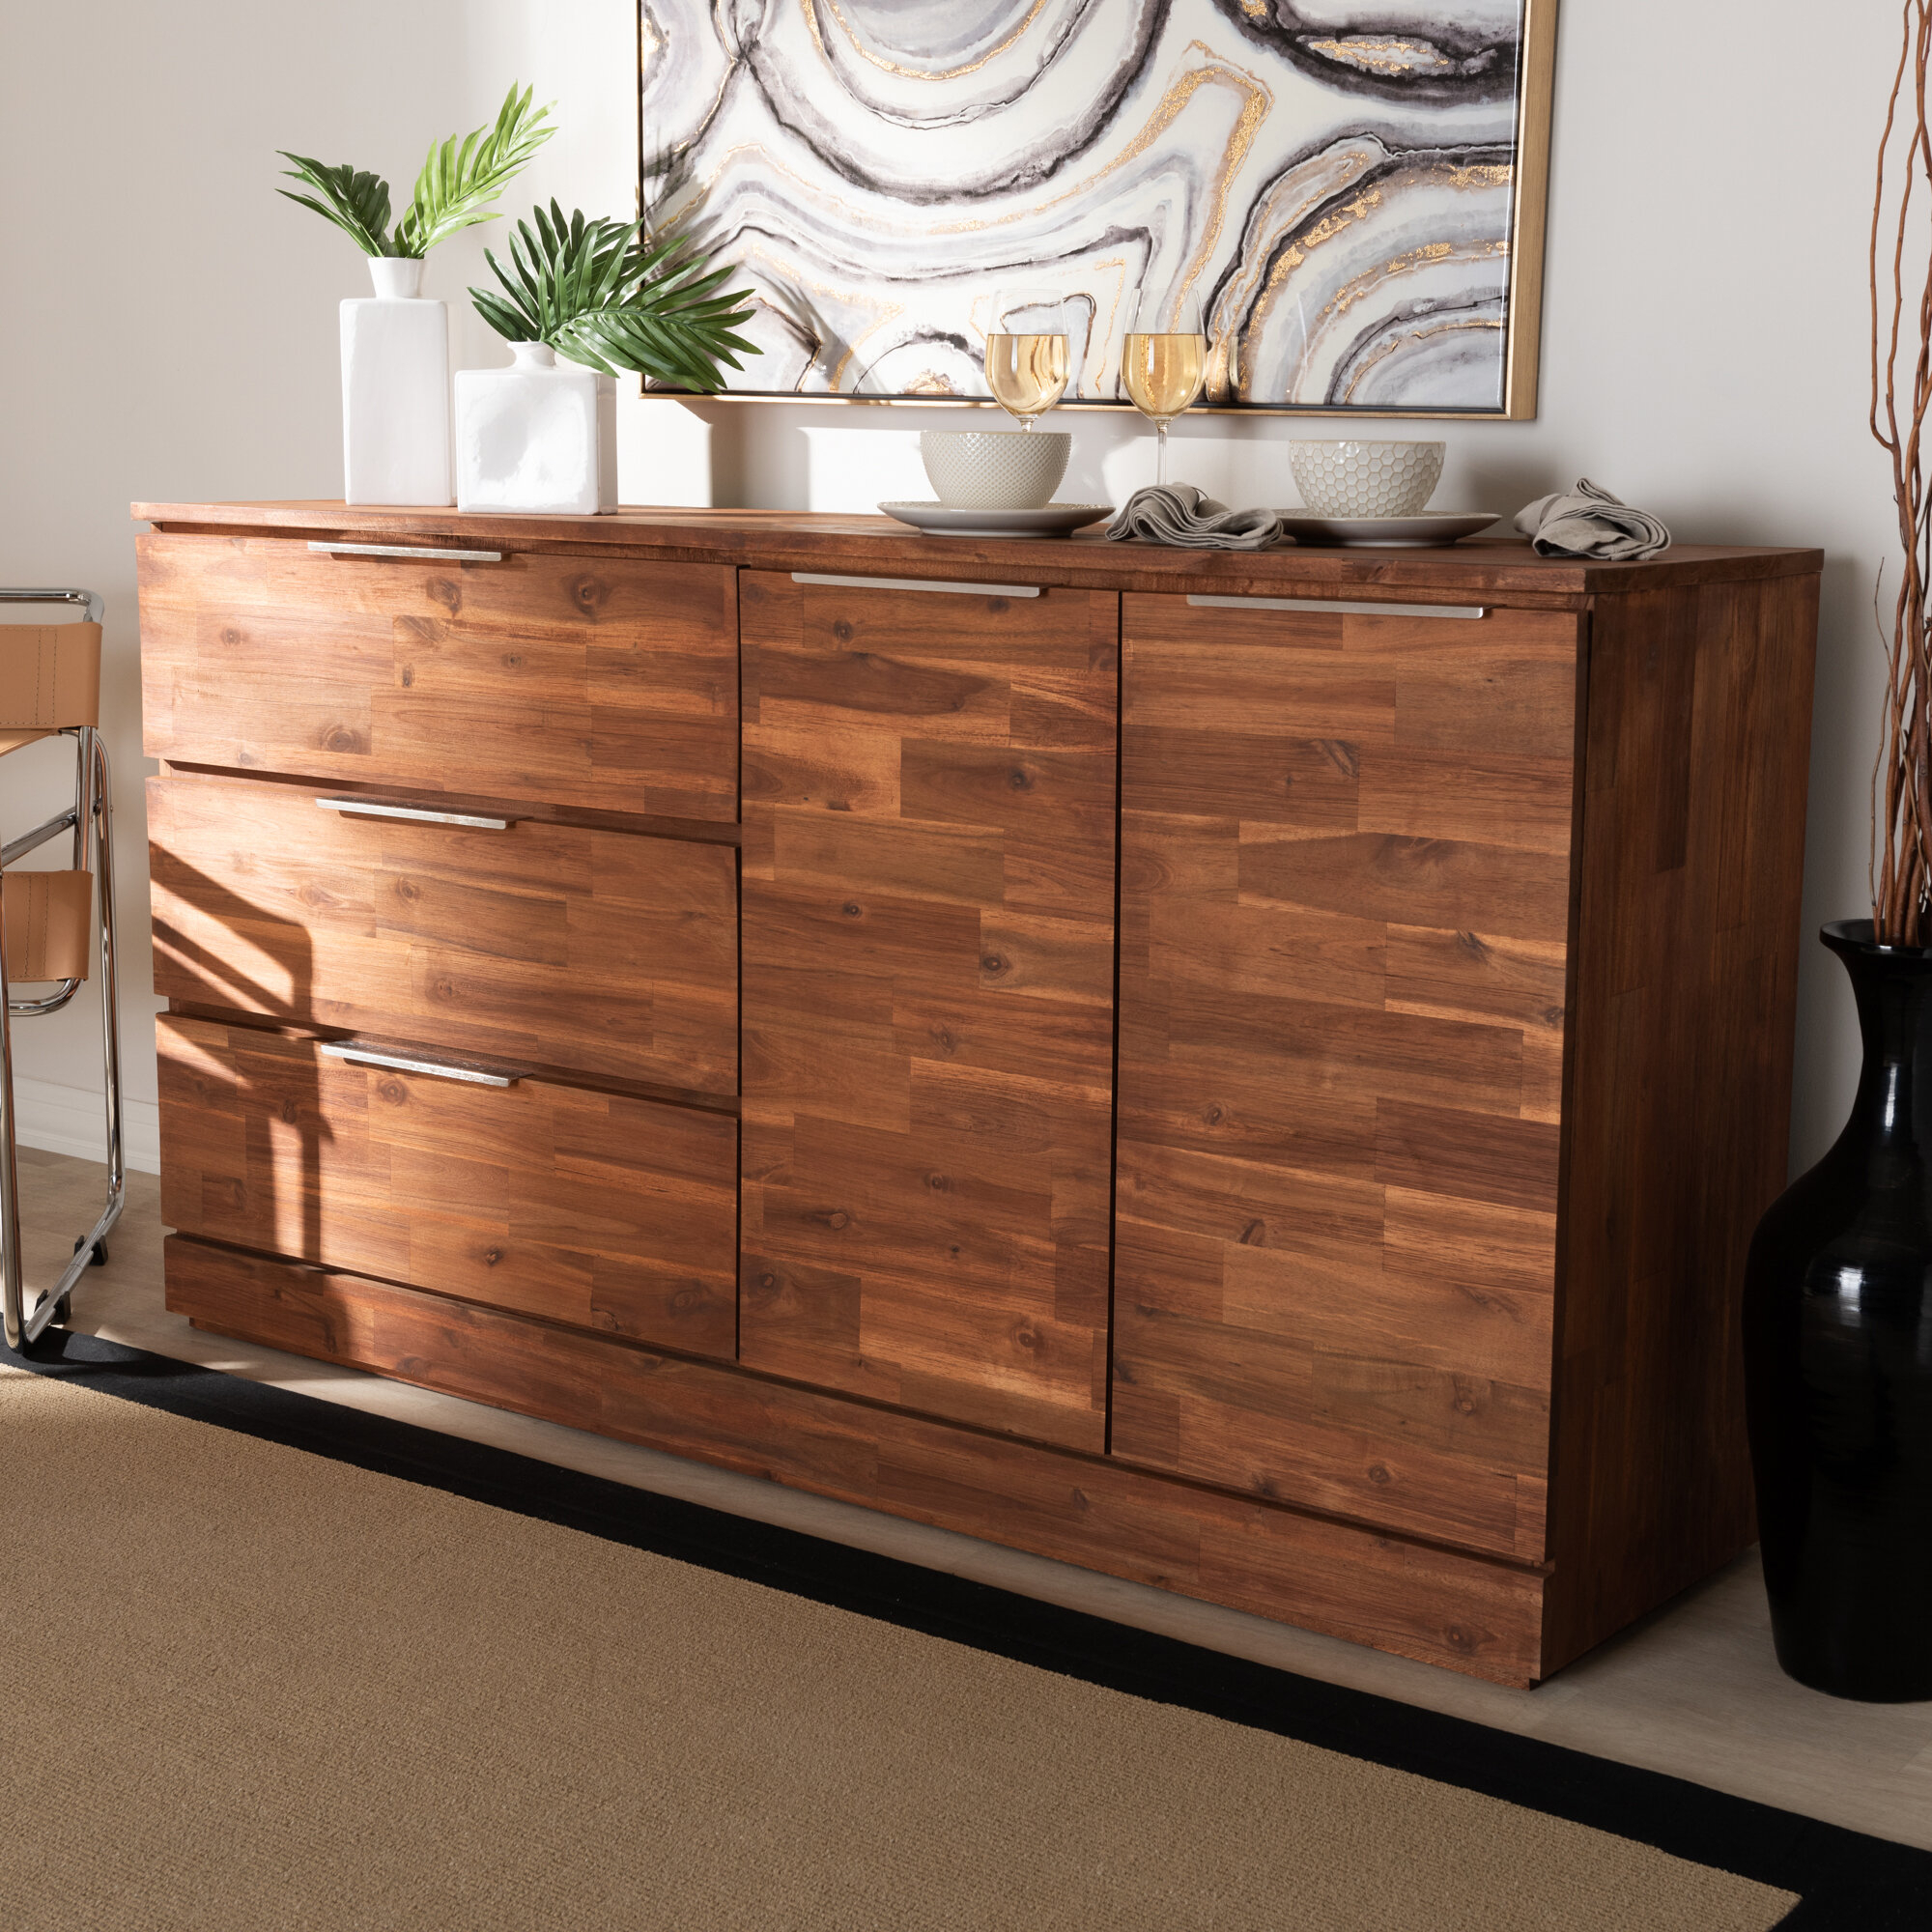 Rustic Sideboards & Buffets | Joss & Main For Seven Seas Asian Sideboards (View 19 of 23)